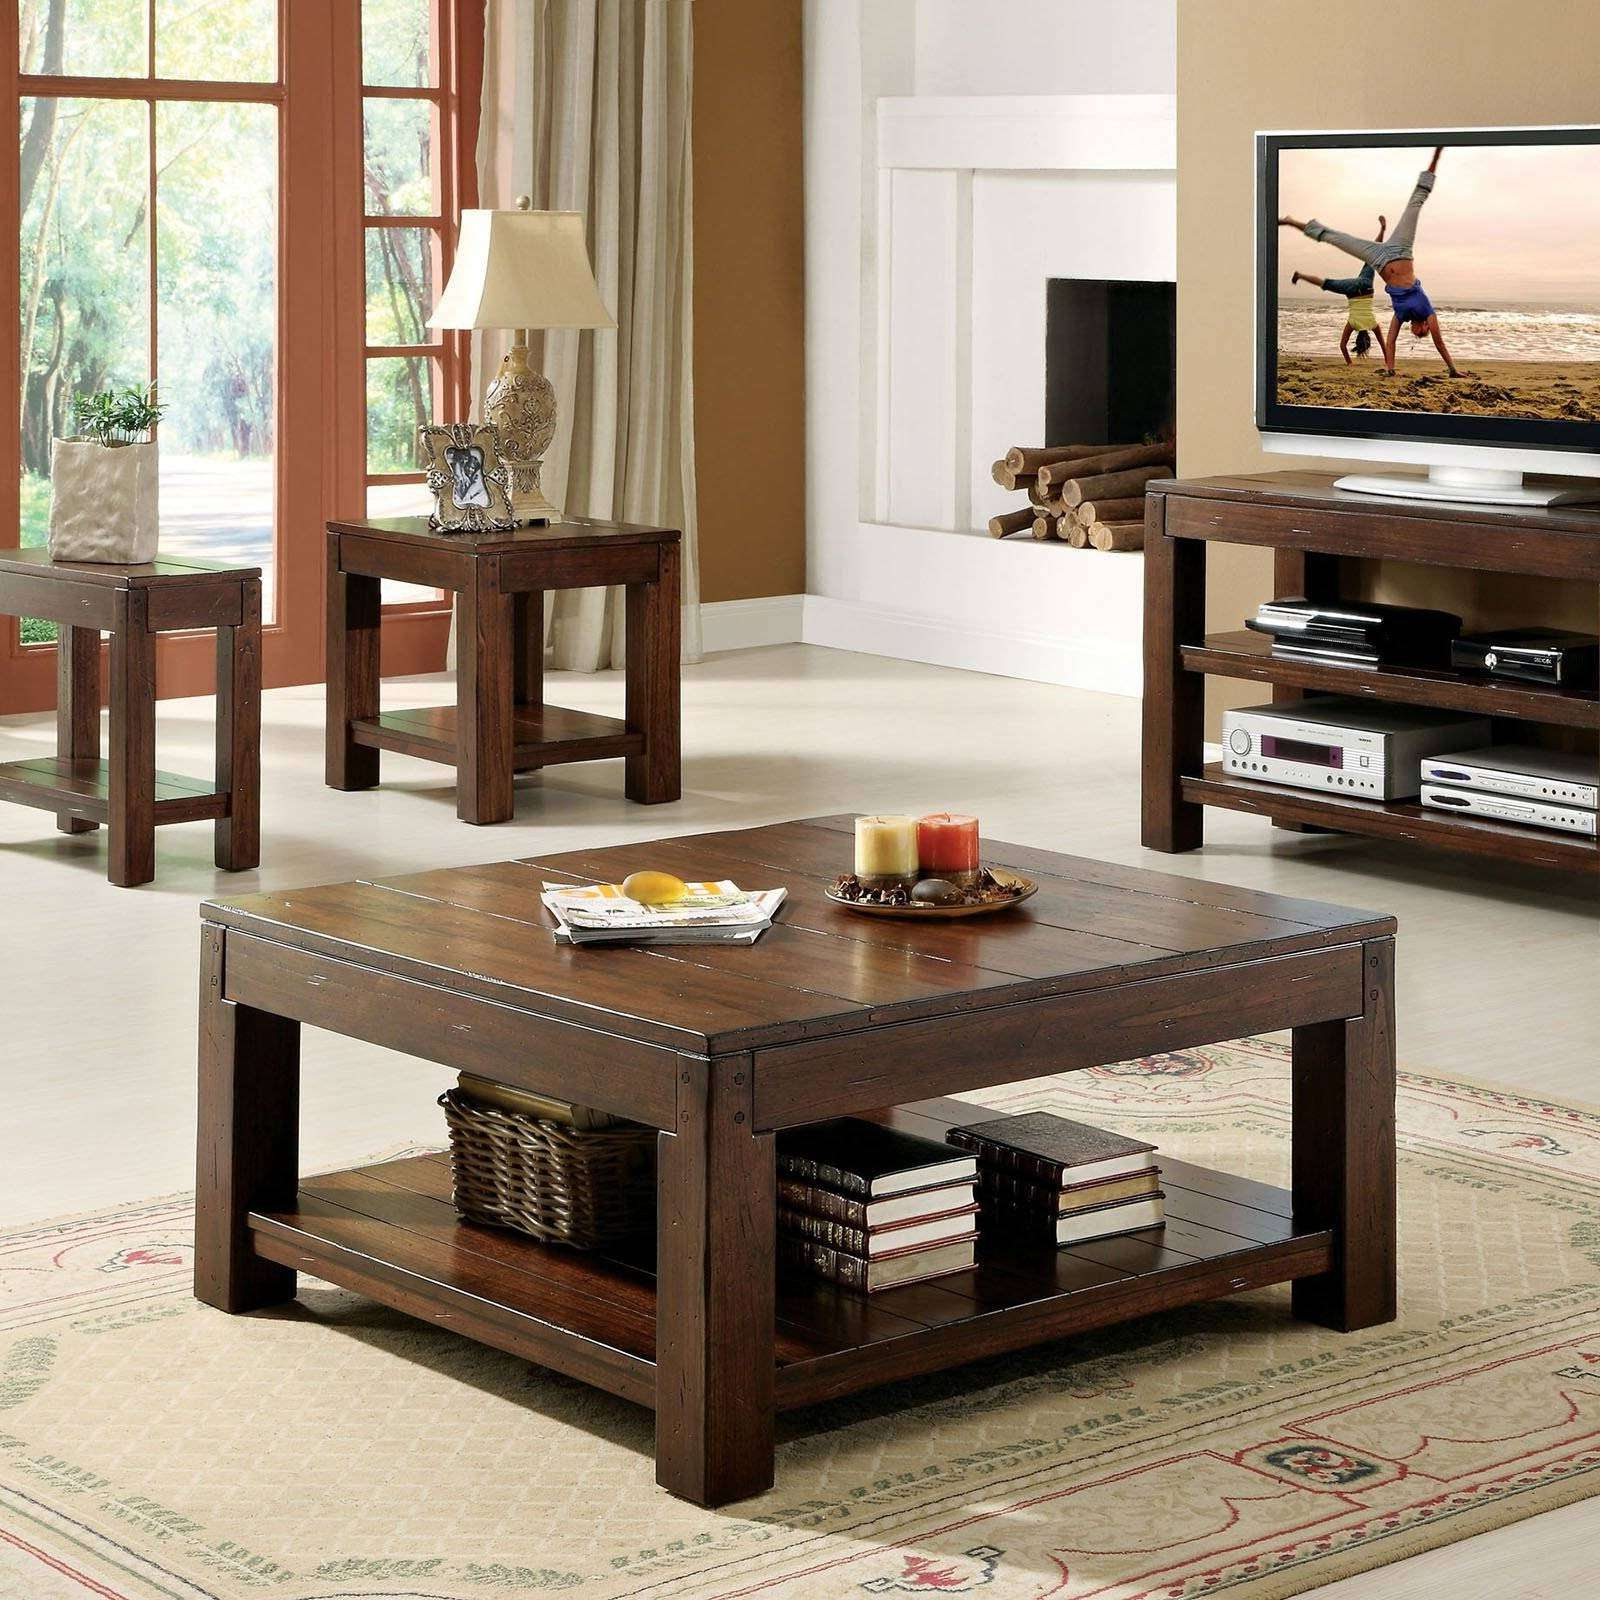 8 Matching Tv Cabinet And Coffee Table Photos (View 8 of 20)